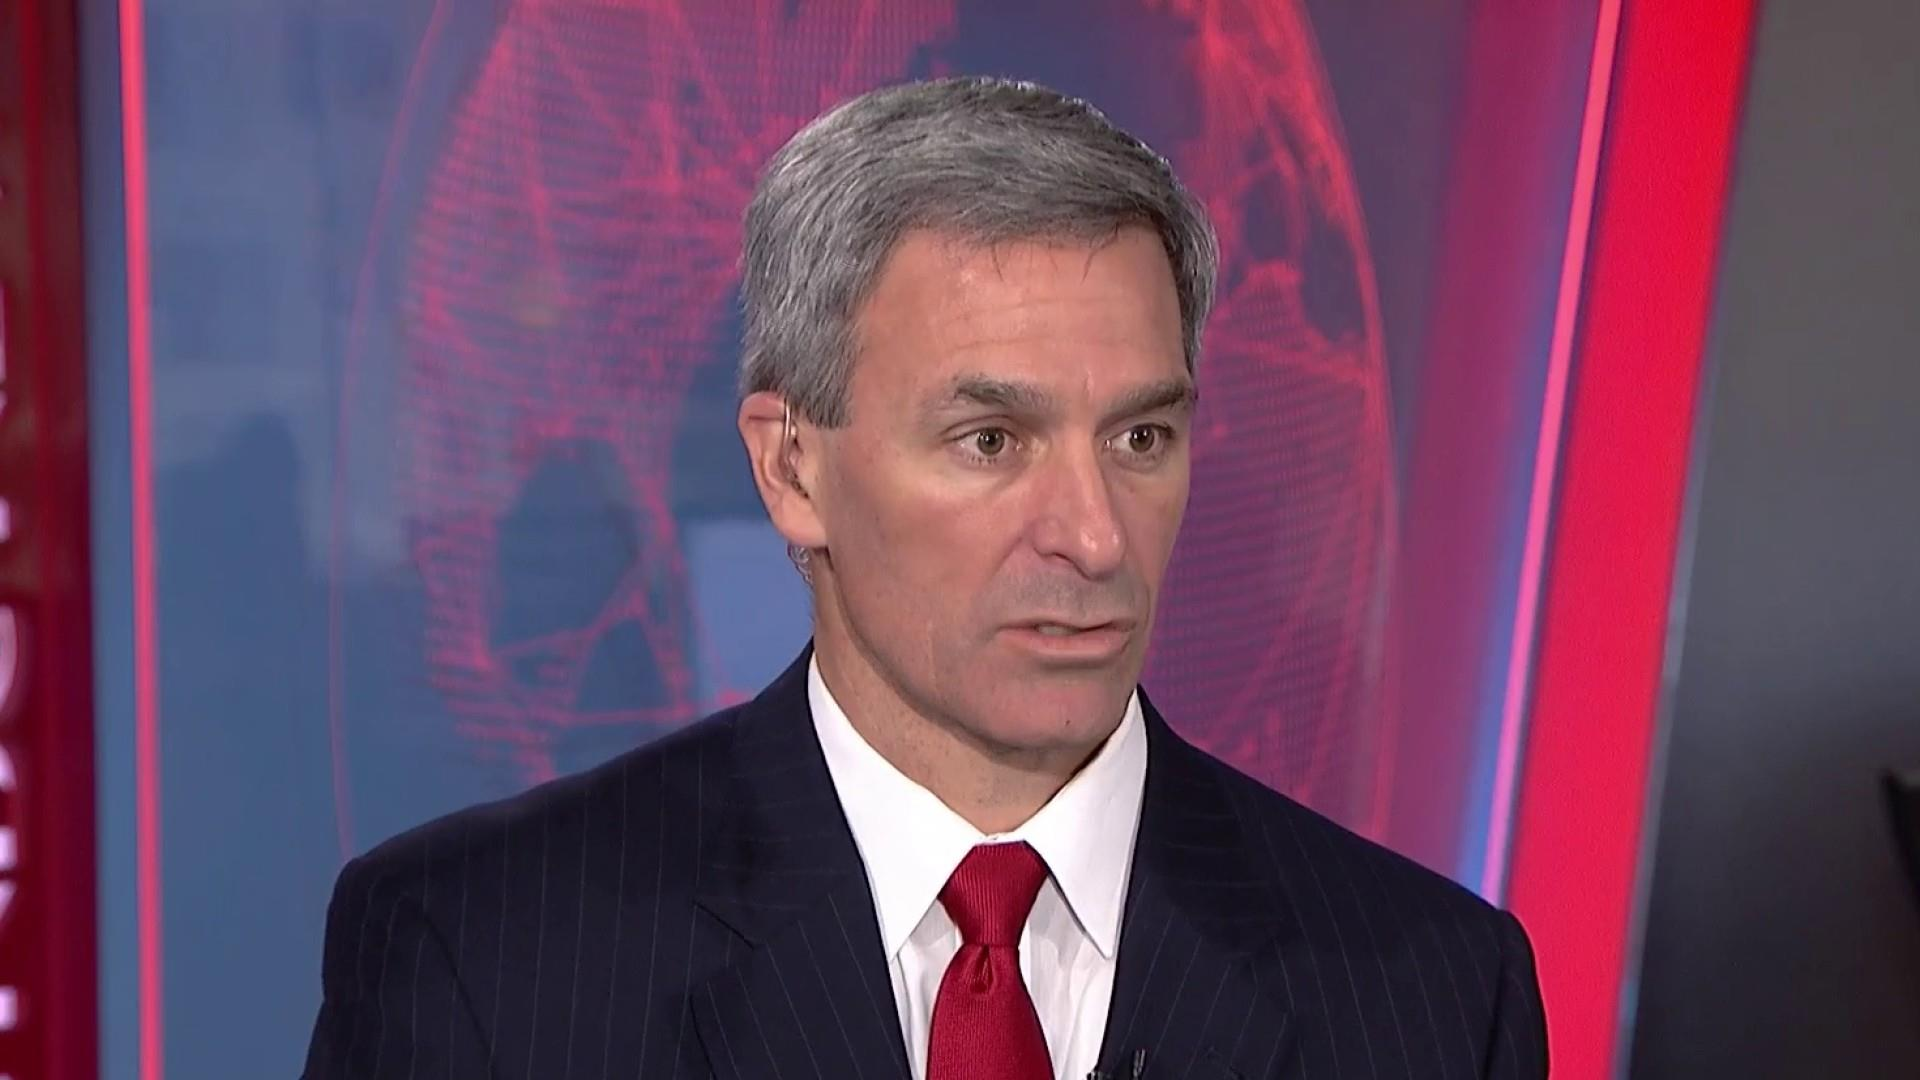 Acting USCIS director Ken Cuccinelli on 'Remain in Mexico' policy